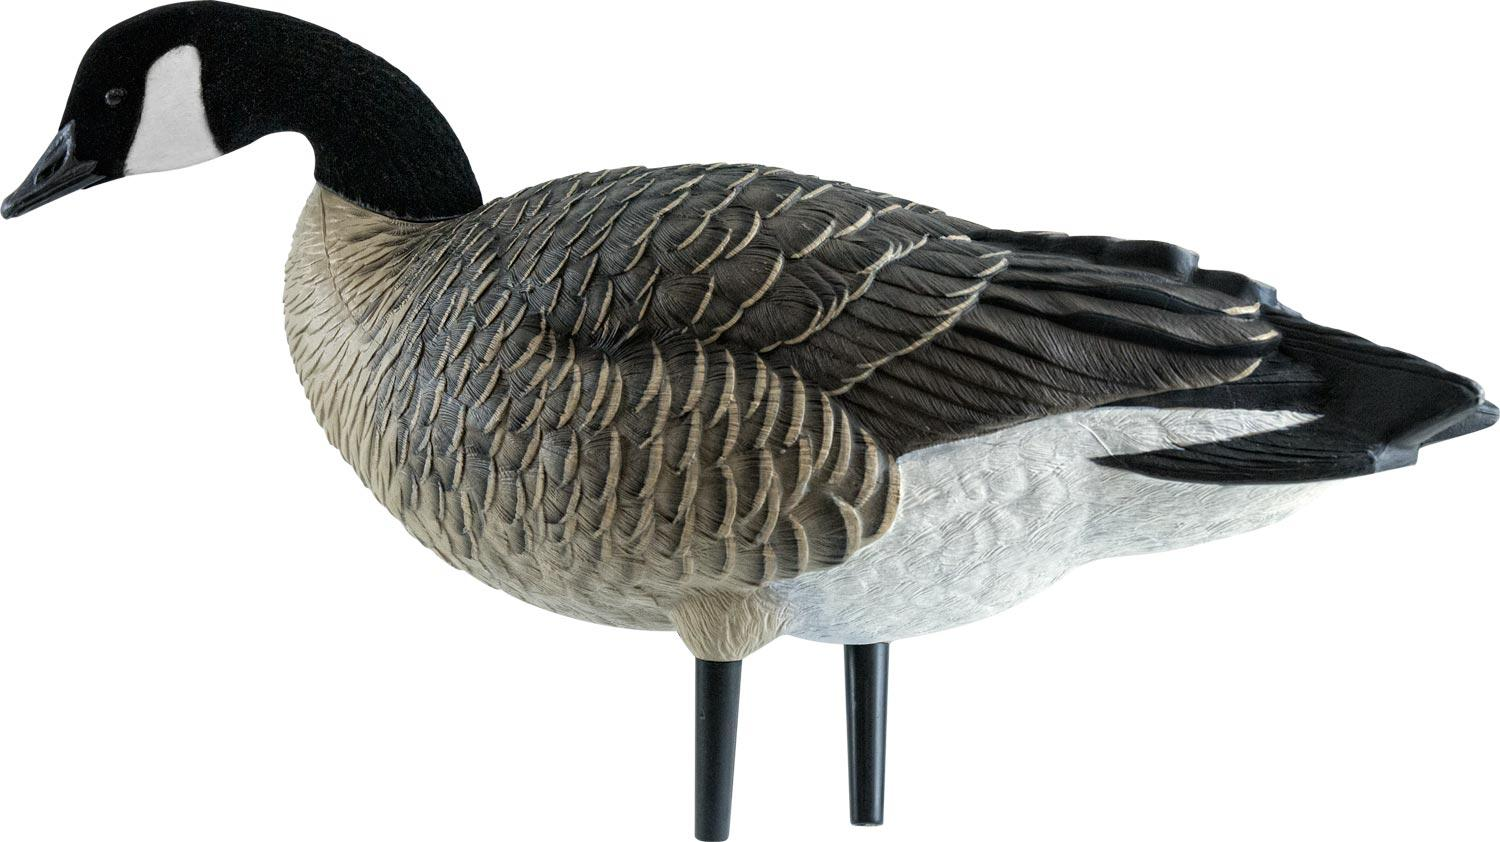 Avian-X AXF Outfitter Lesser Pack Fully Flocked Decoys, 12 Pack with Slotted Decoy Bag_7.jpg